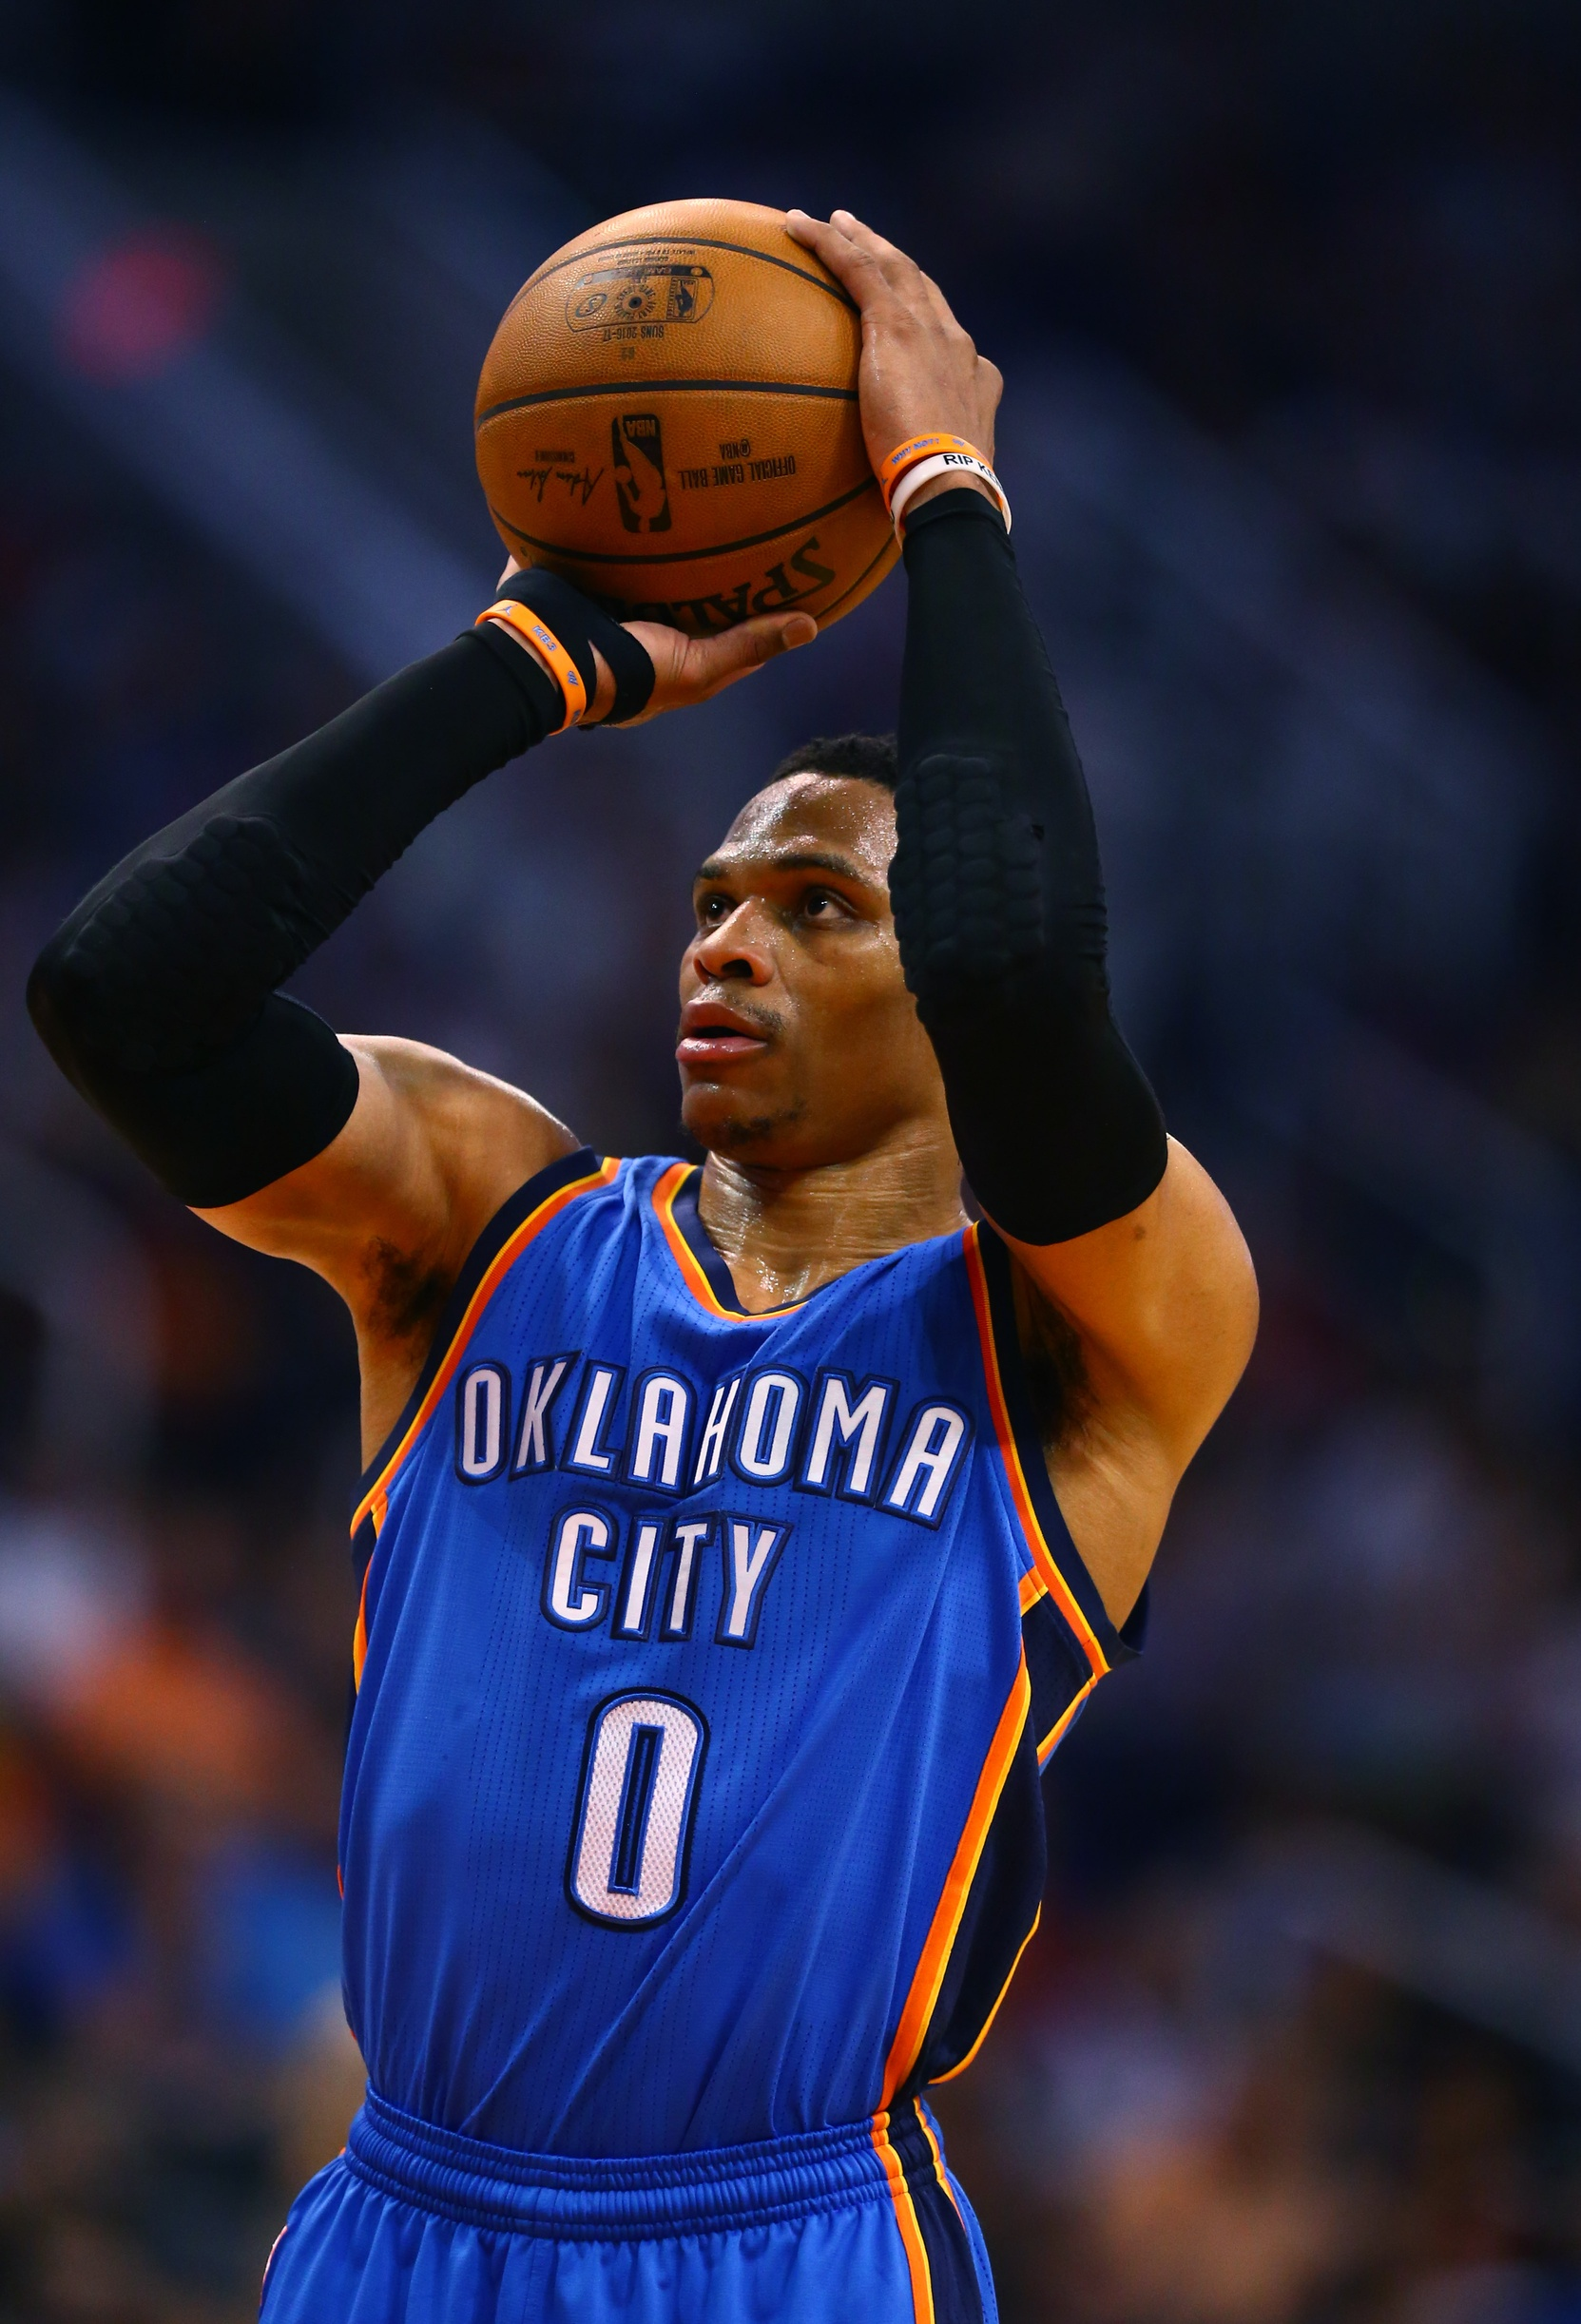 russell westbrook - photo #5